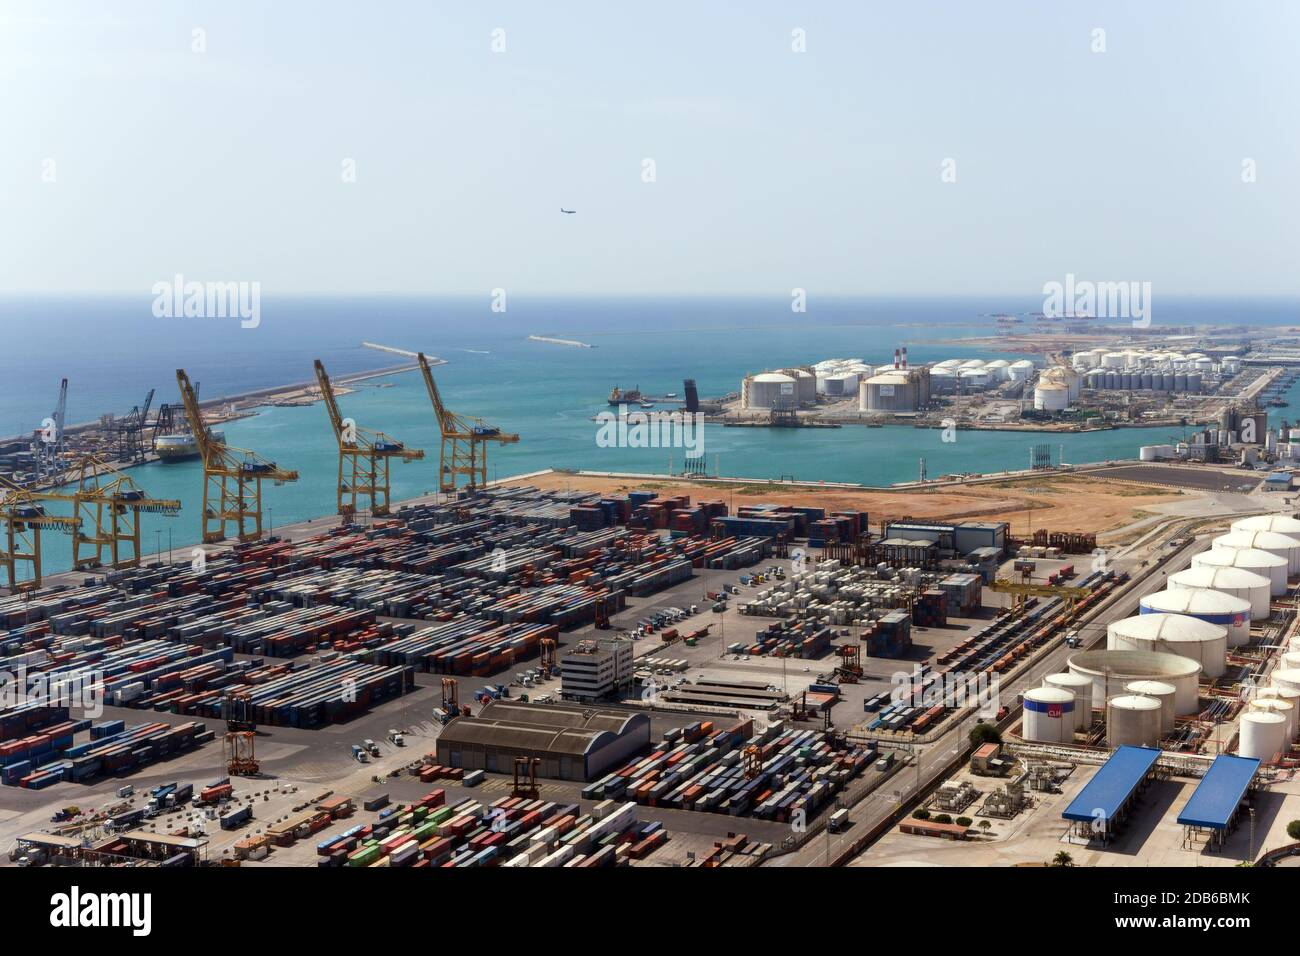 Container, commercial, industrial and logistics sea Port of Barcelona, Spain (ES). aerial view. Stock Photo